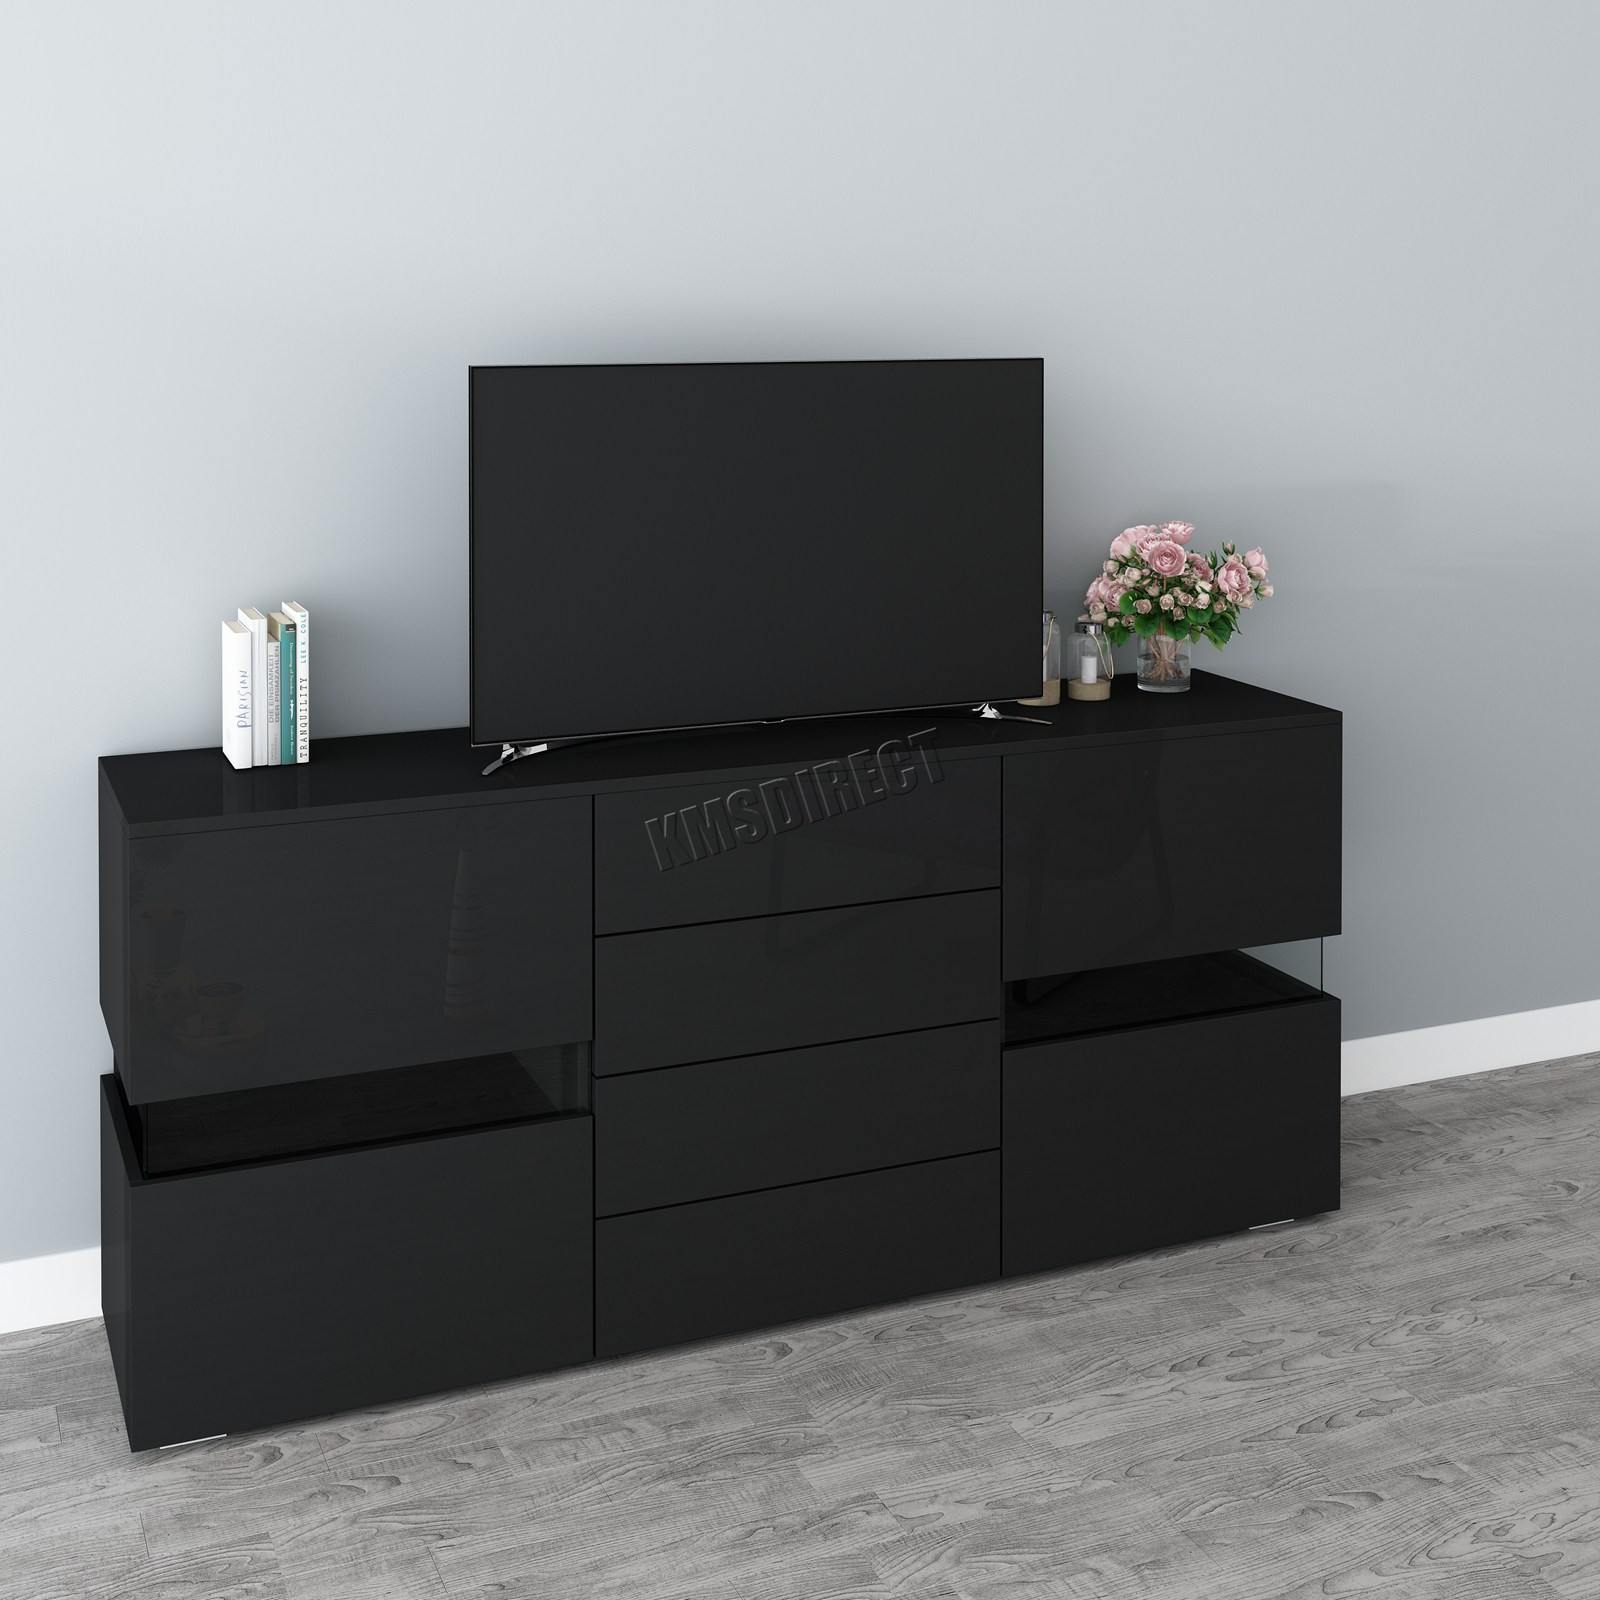 Westwood Tv Cabinet Unit Stand Modern Rgb Led Light High